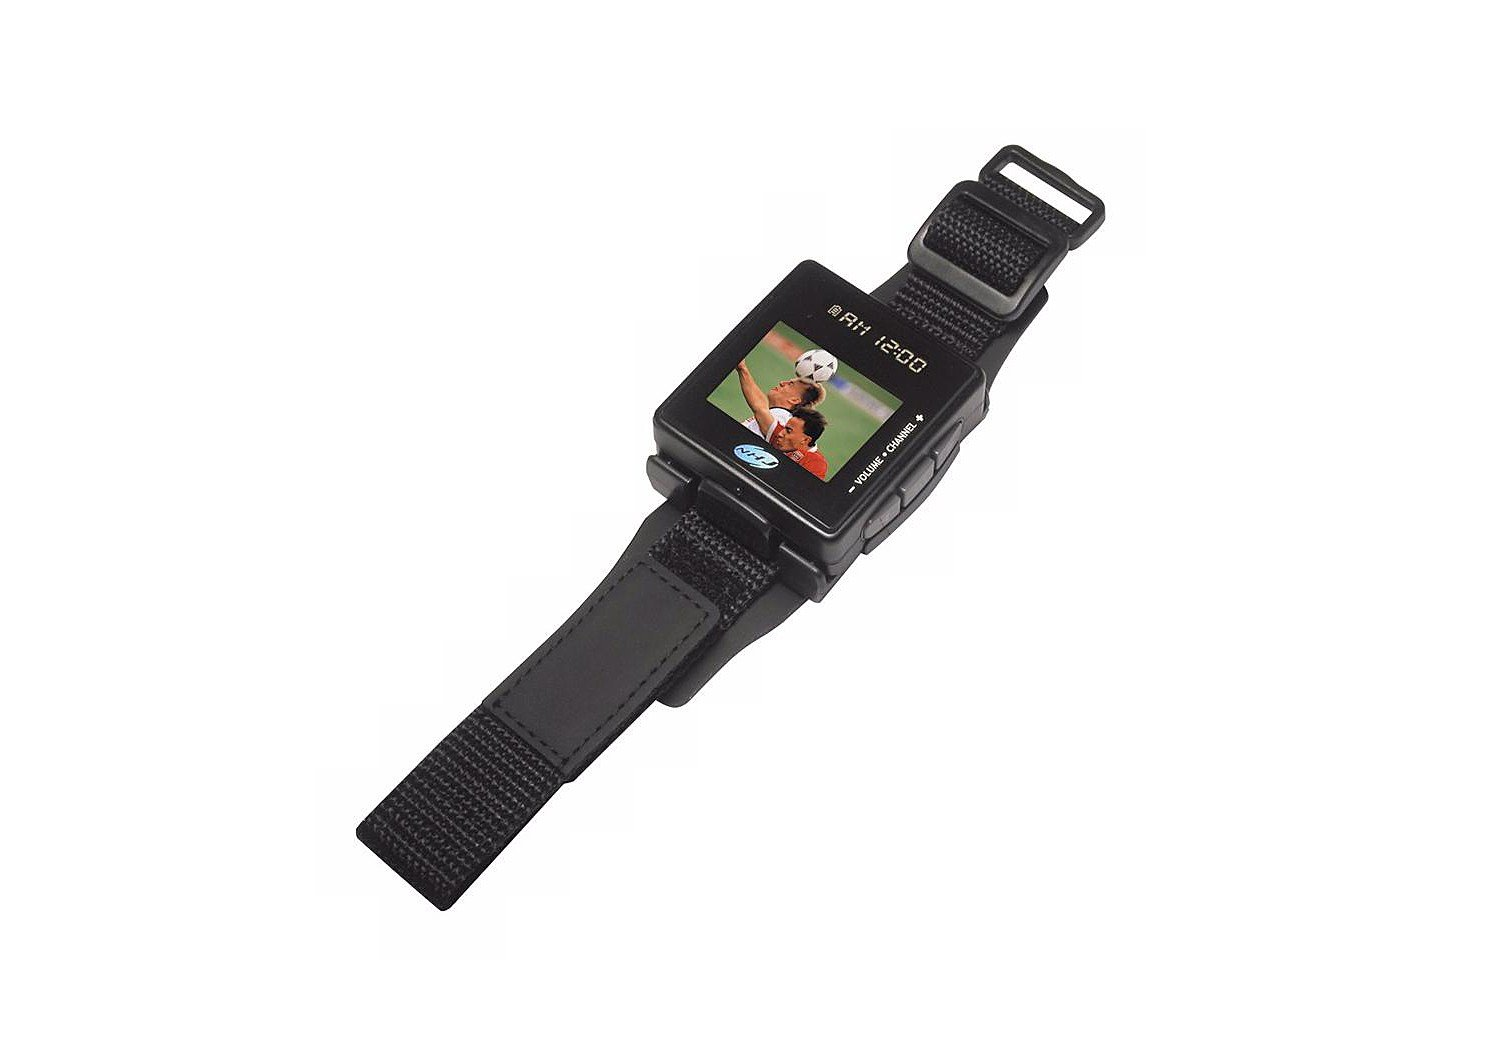 Amazon.com: NHJ Portable Television Watch Wearable 1.5